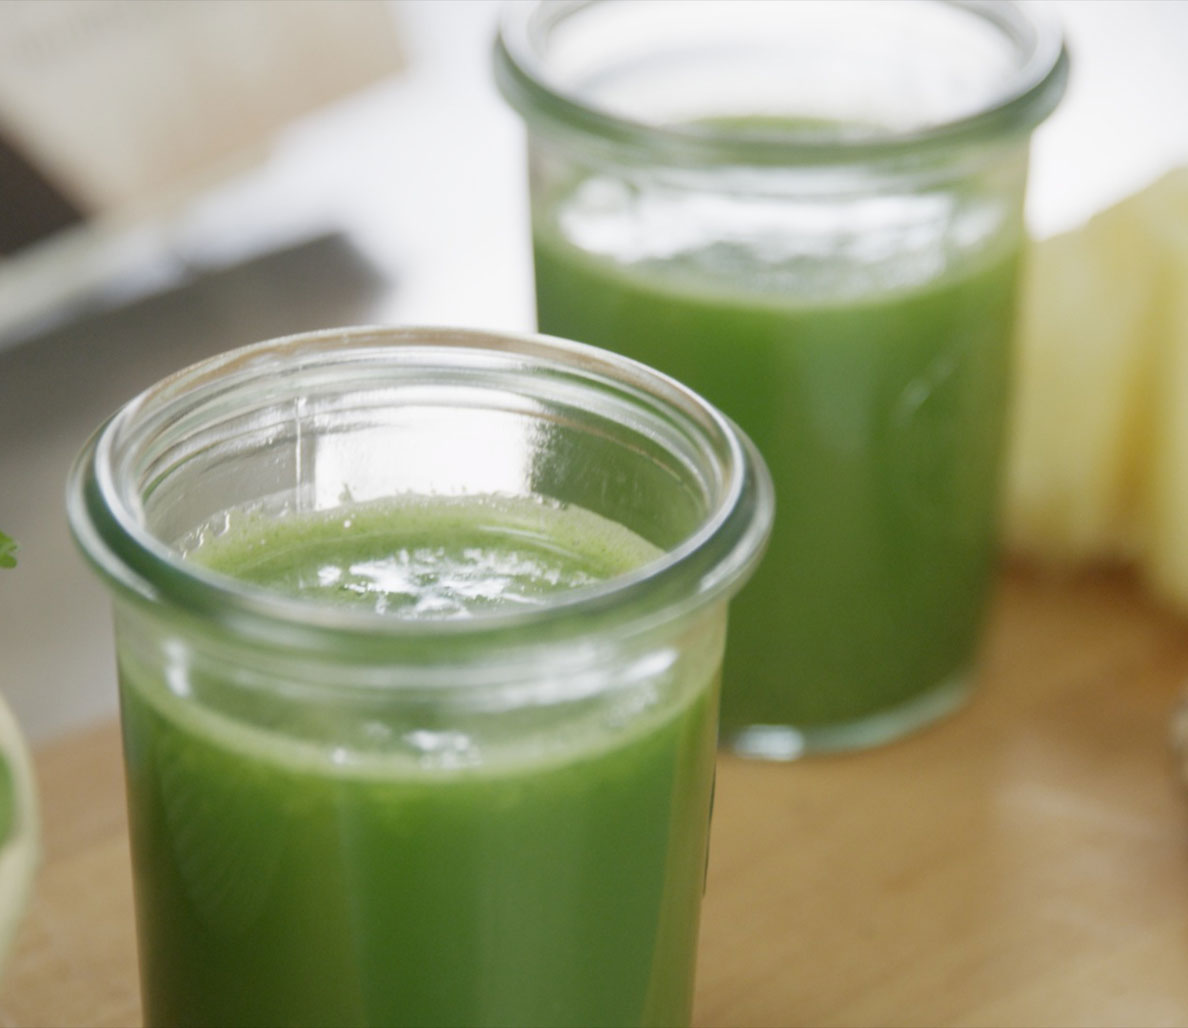 Spicy Ginger and Pineapple Green Drink Recipe